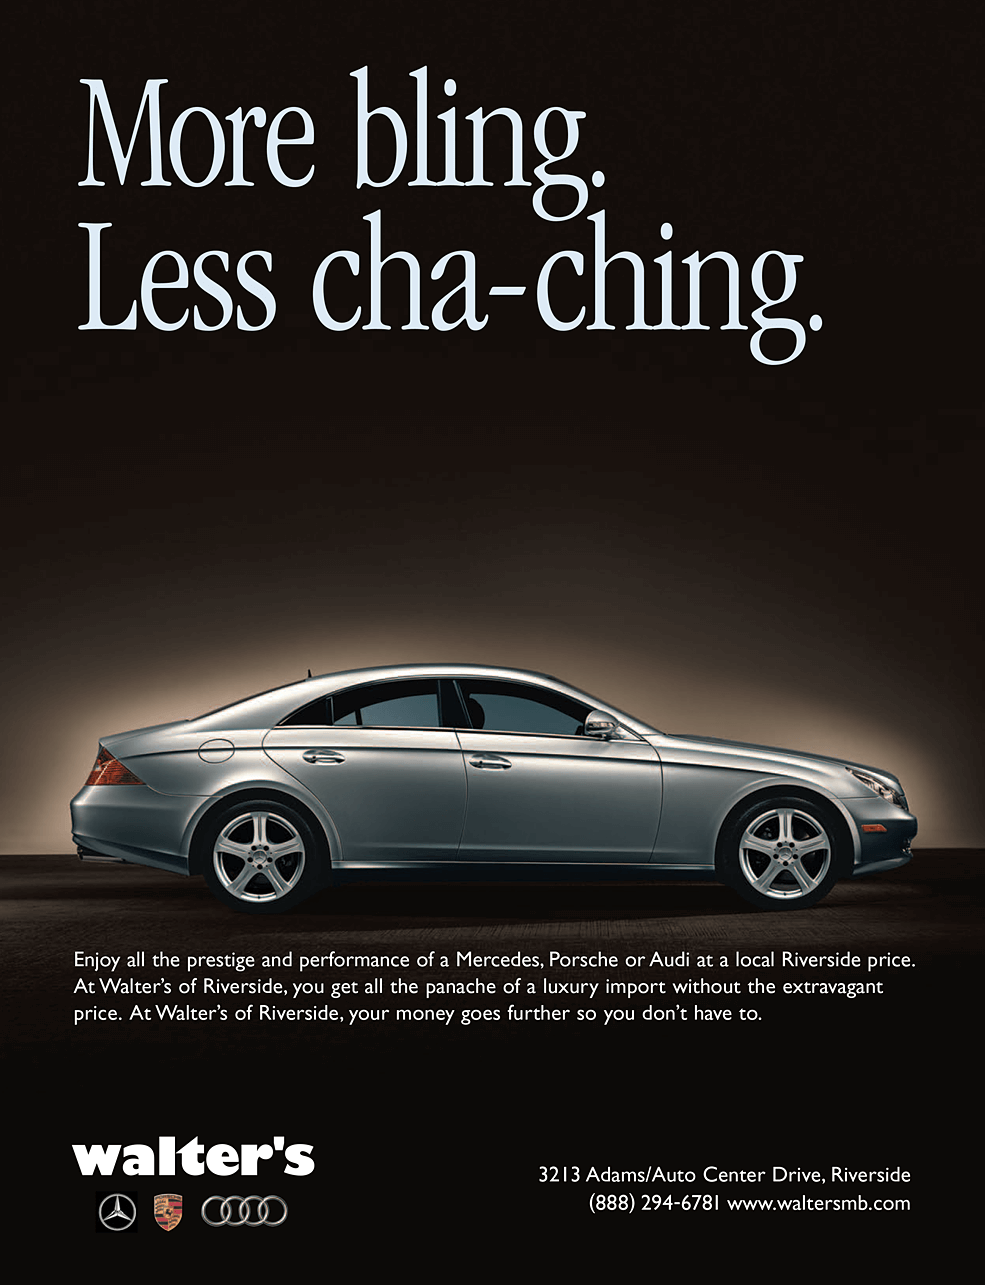 Walter's More Bling Less Cha-Ching Print Ad